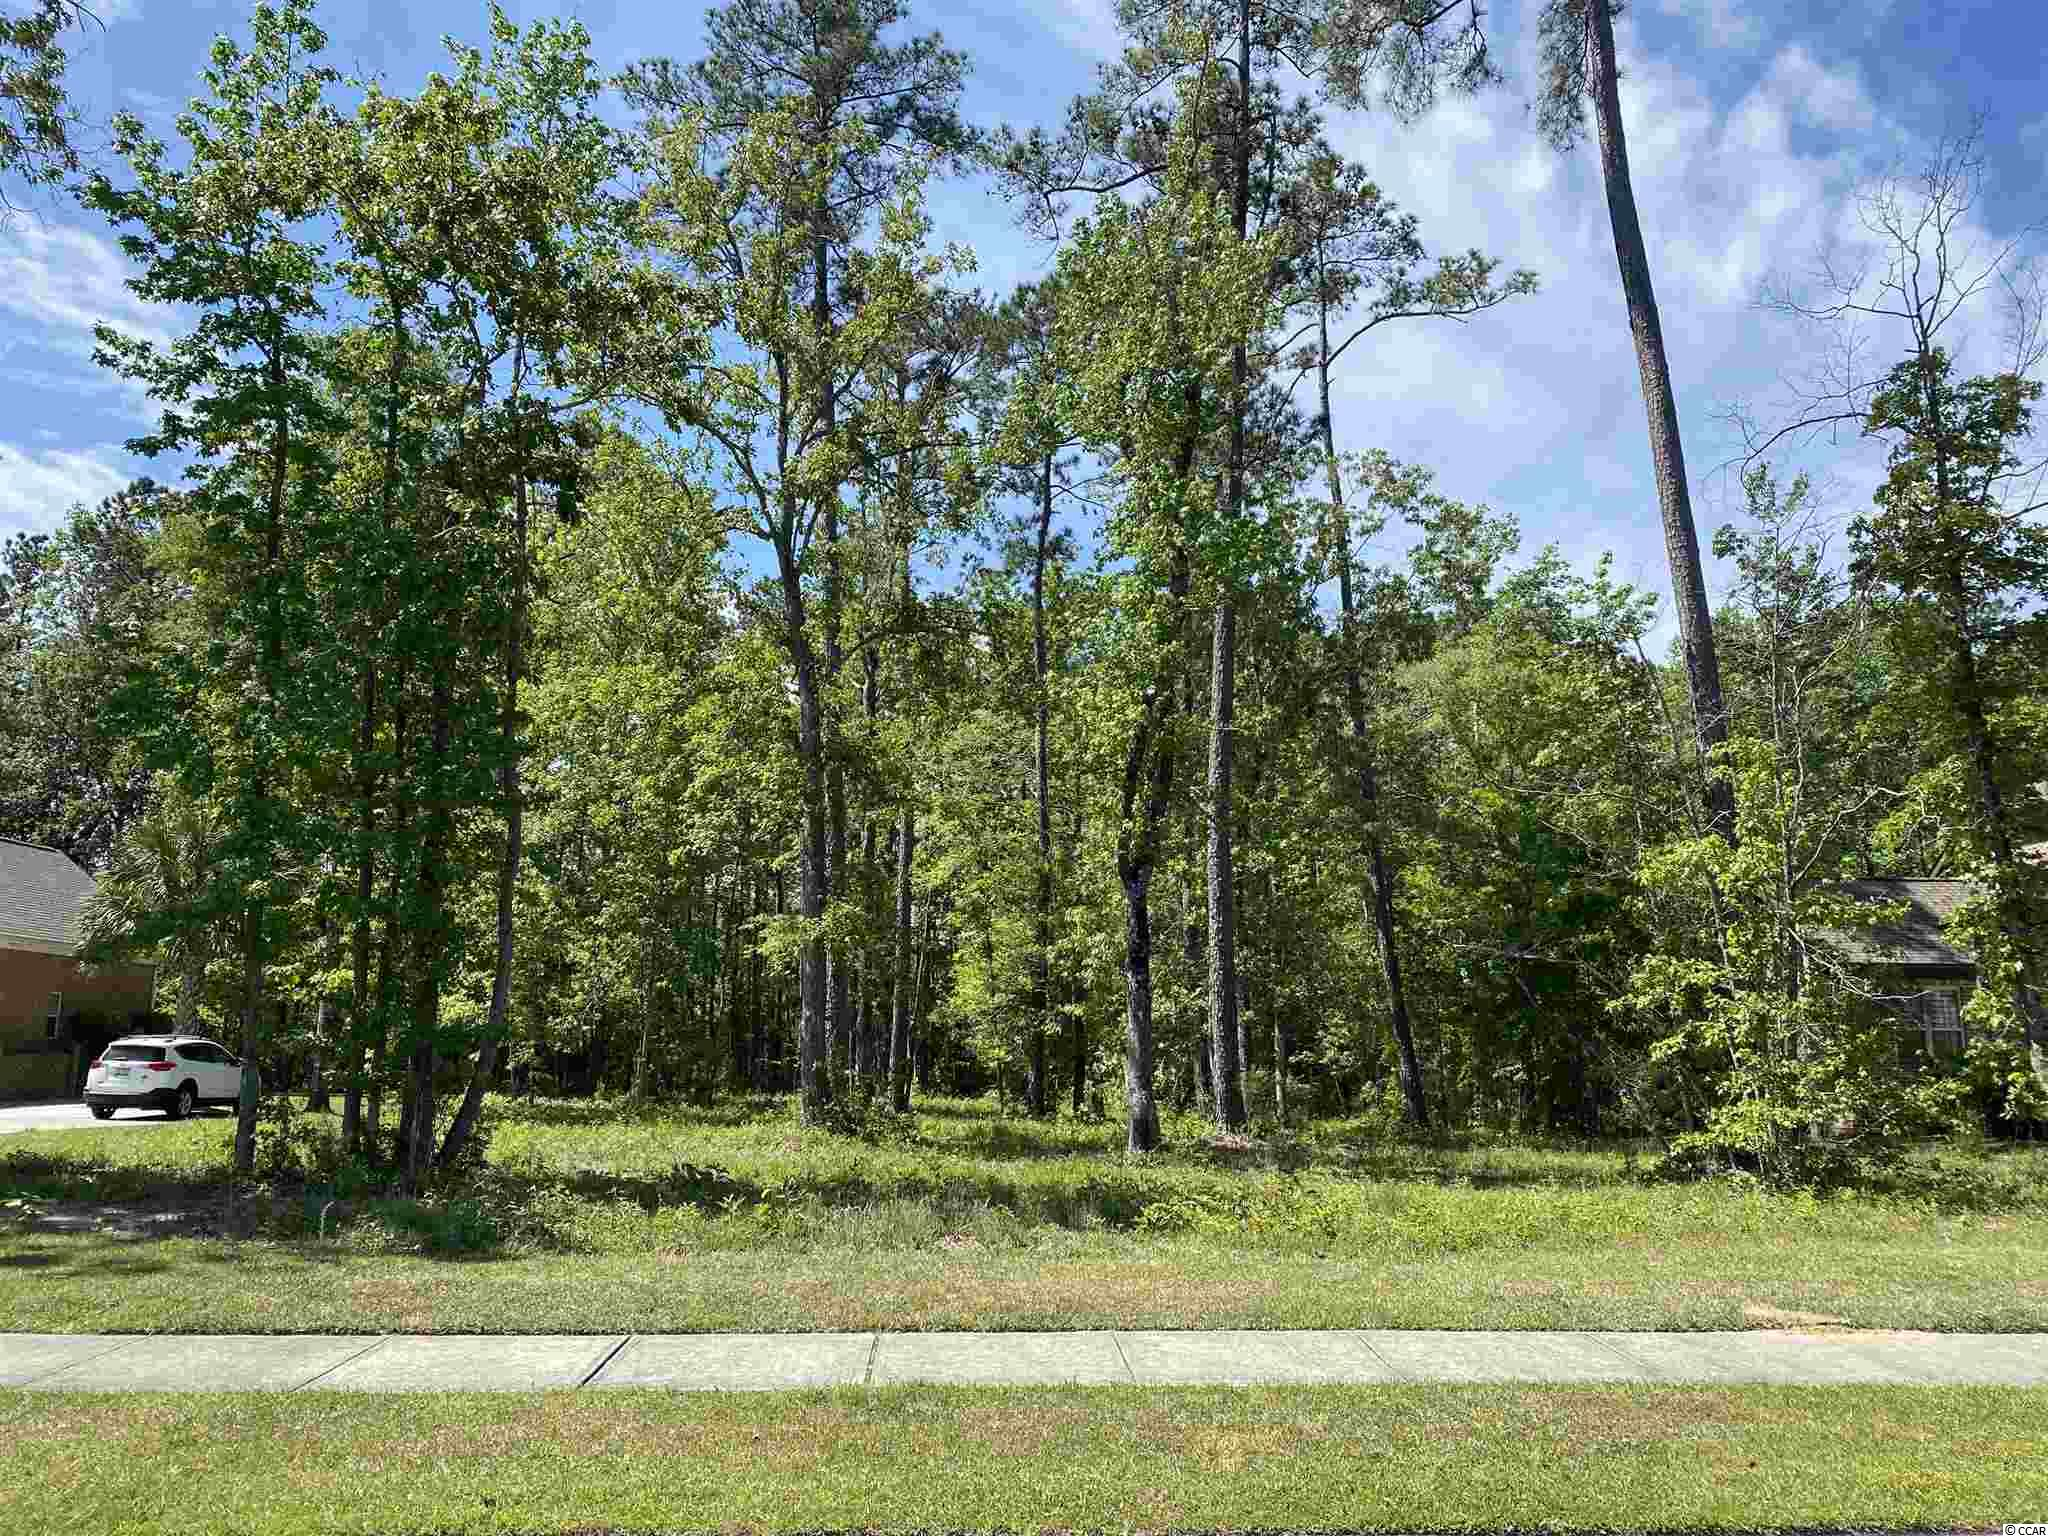 Located in the gated intercoastal community of Cypress River Plantation this lot over half an acre is ready for you to build your custom dream home.  This lot backs on to a heavily wooded buffer providing you with ample privacy in your backyard and is situated well off the main community road on Ellerbe Circle further adding to the quiet surroundings of your future home.  Look no further, Cypress River Plantation boost 24 hour manned gate/security, large clubhouse with a generous size pool, gym, walkways to day docks on the intercoastal, boat launch for all residents, tennis court, basketball court and playground.  Schedule your showing today!